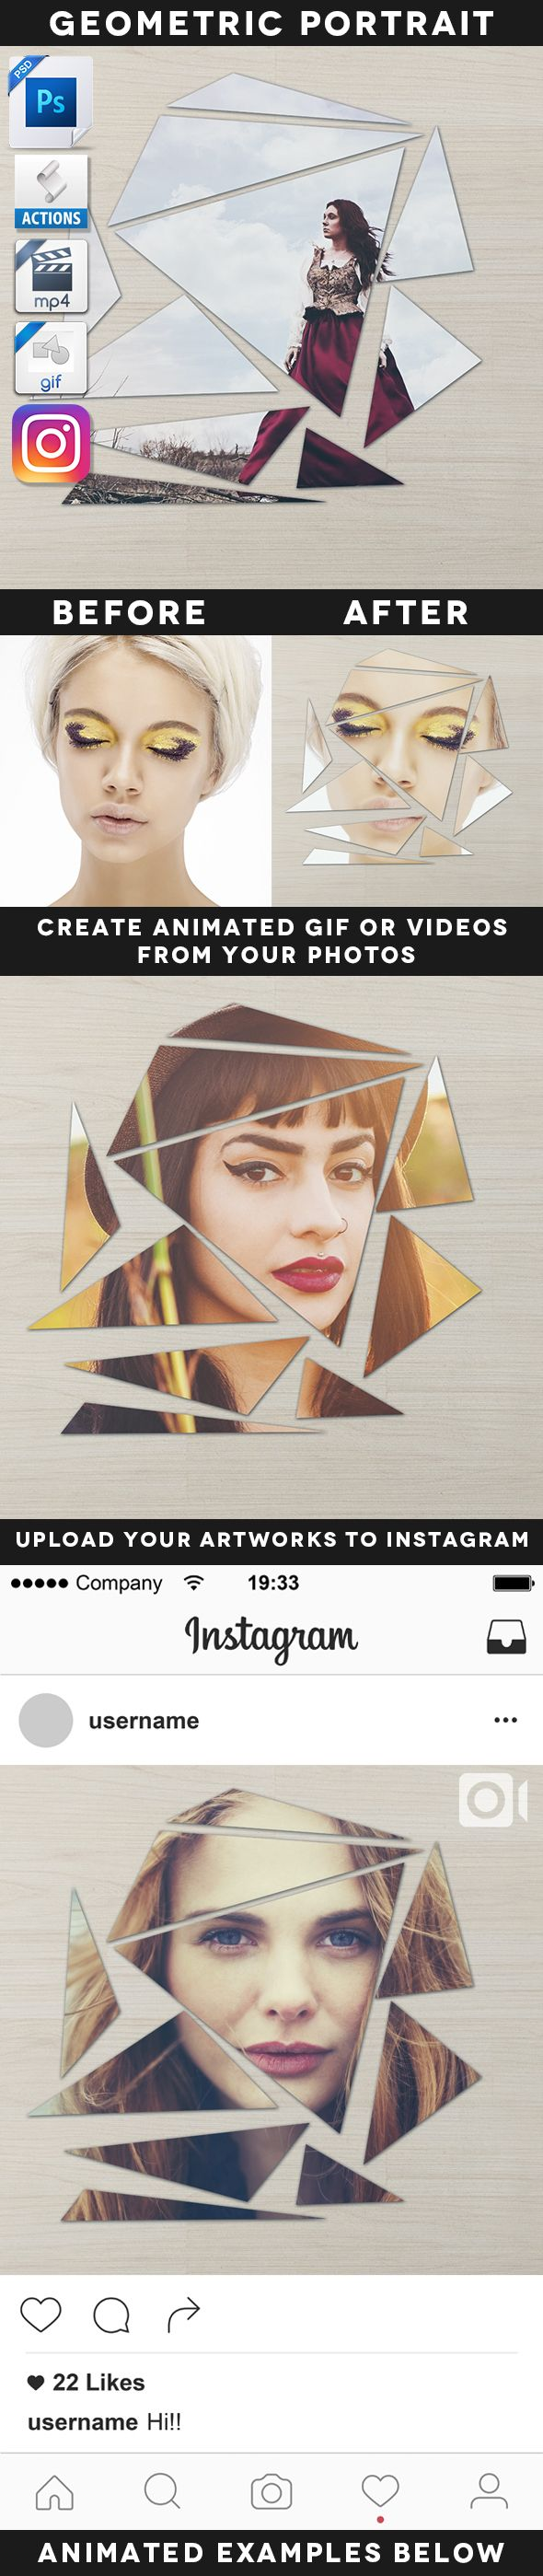 Animated Broken Geometric Portrait Action - Photo Effects Actions